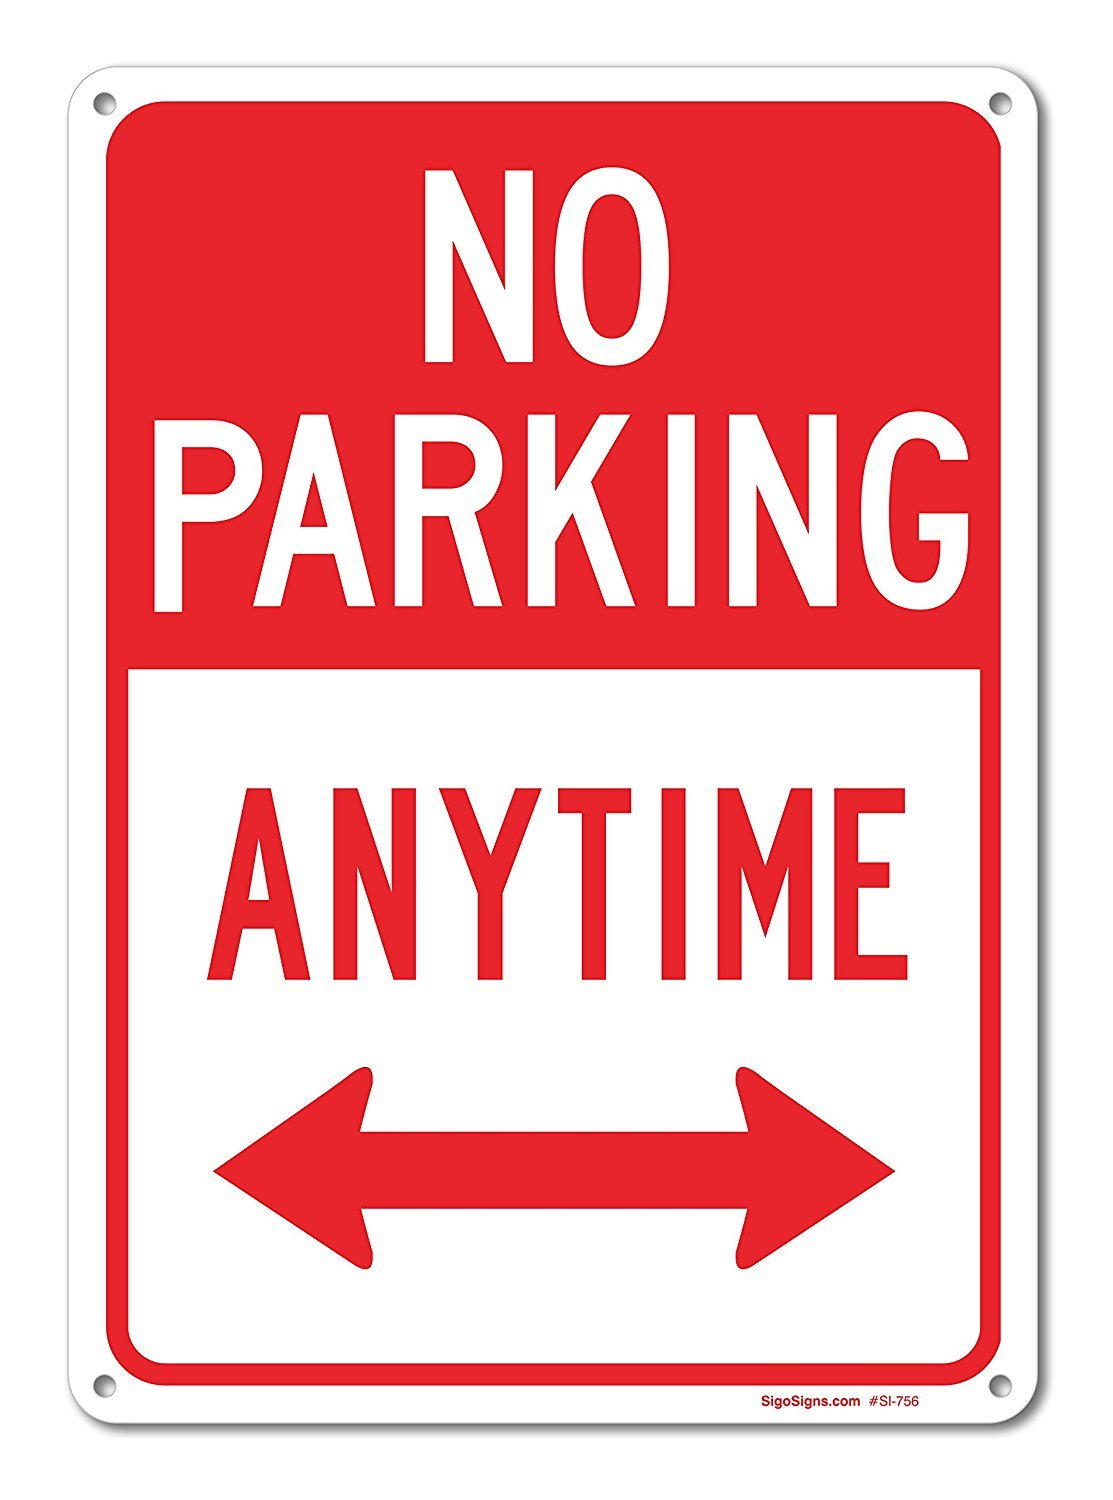 No Parking Anytime Sign with Arrows, Large 10 X 14'' Aluminum, for Indoor or Outdoor Use - by SIGO SIGNS